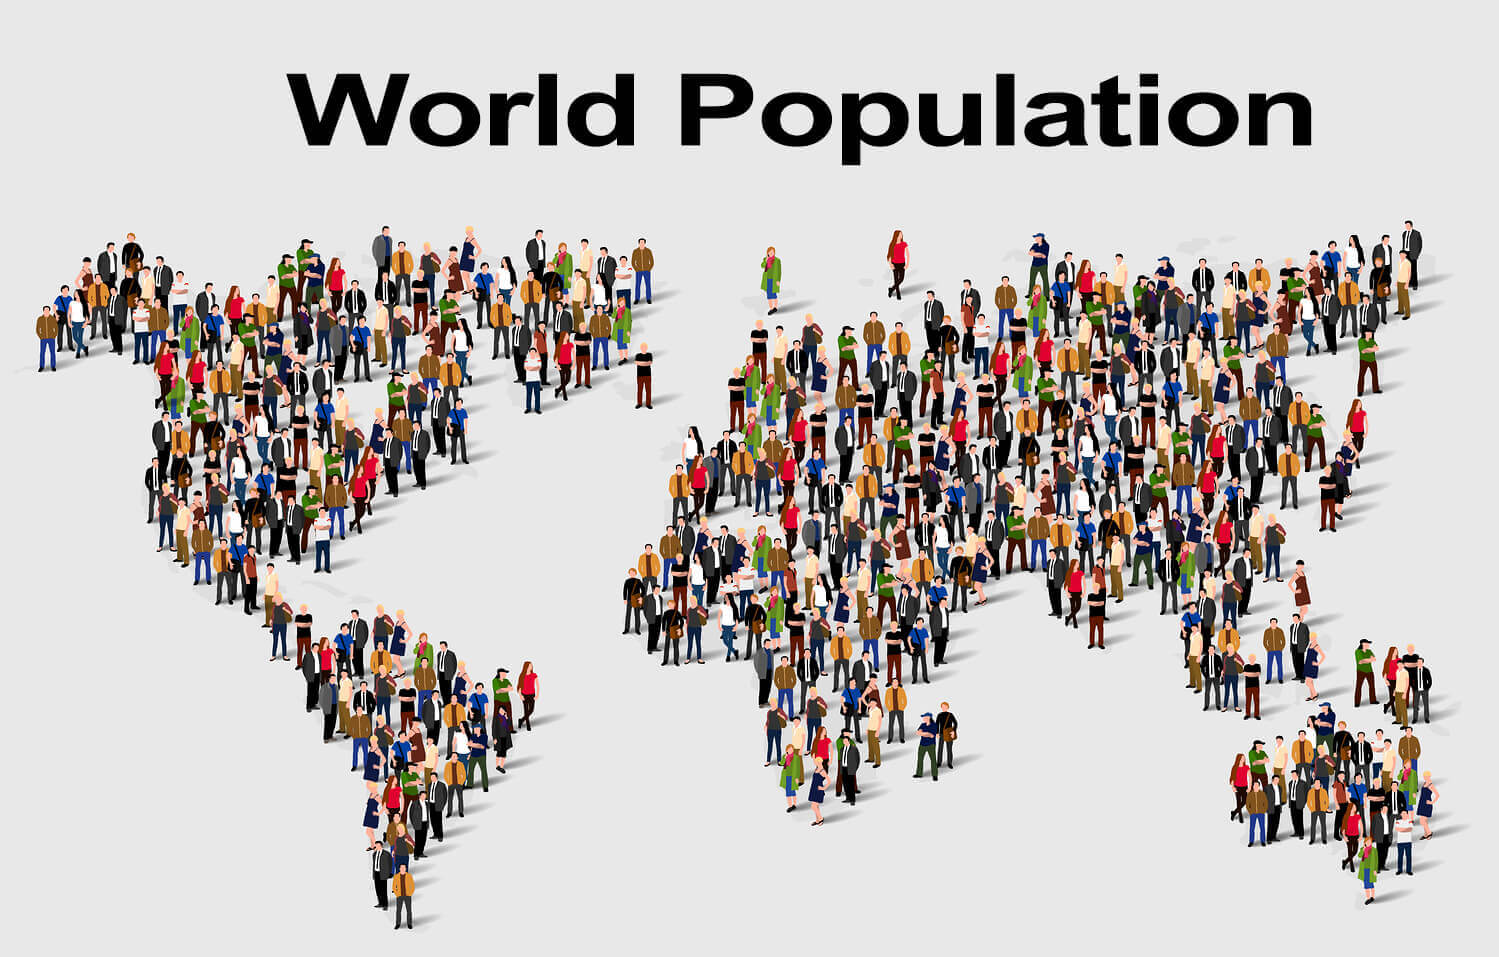 the growing concerns over the overpopulation in the world World population growth rate must  this is of particular concern for the least developed countries worldwide, which are growing at the fastest.